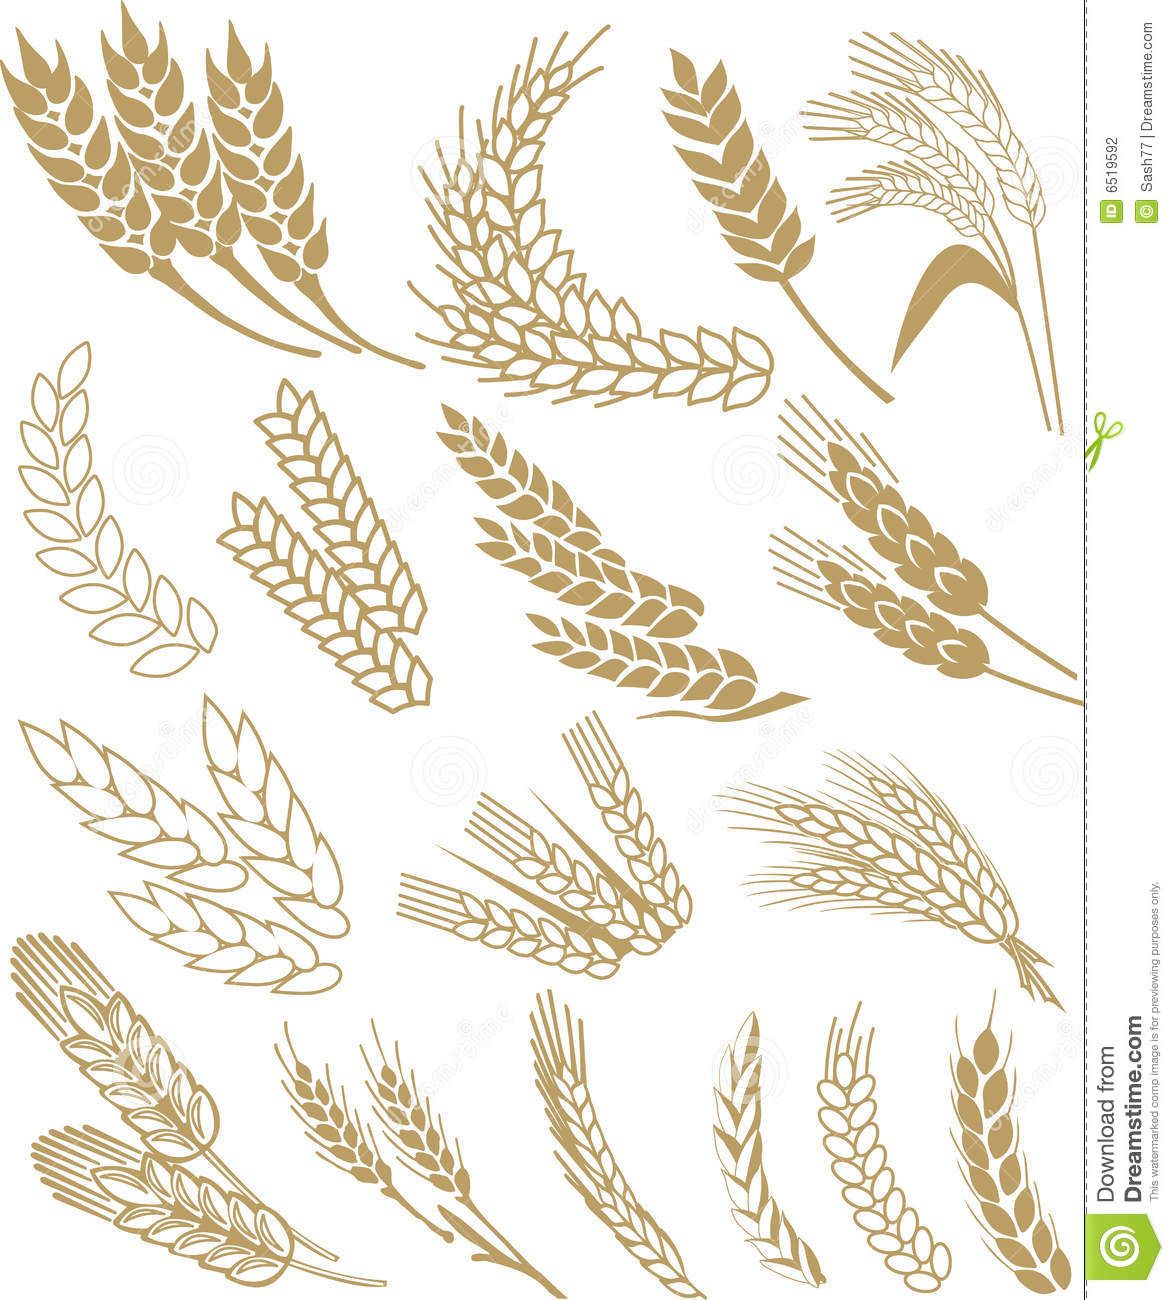 Wheat clipart vector clip art black and white library Wheat Vector - Download From Over 59 Million High Quality ... clip art black and white library